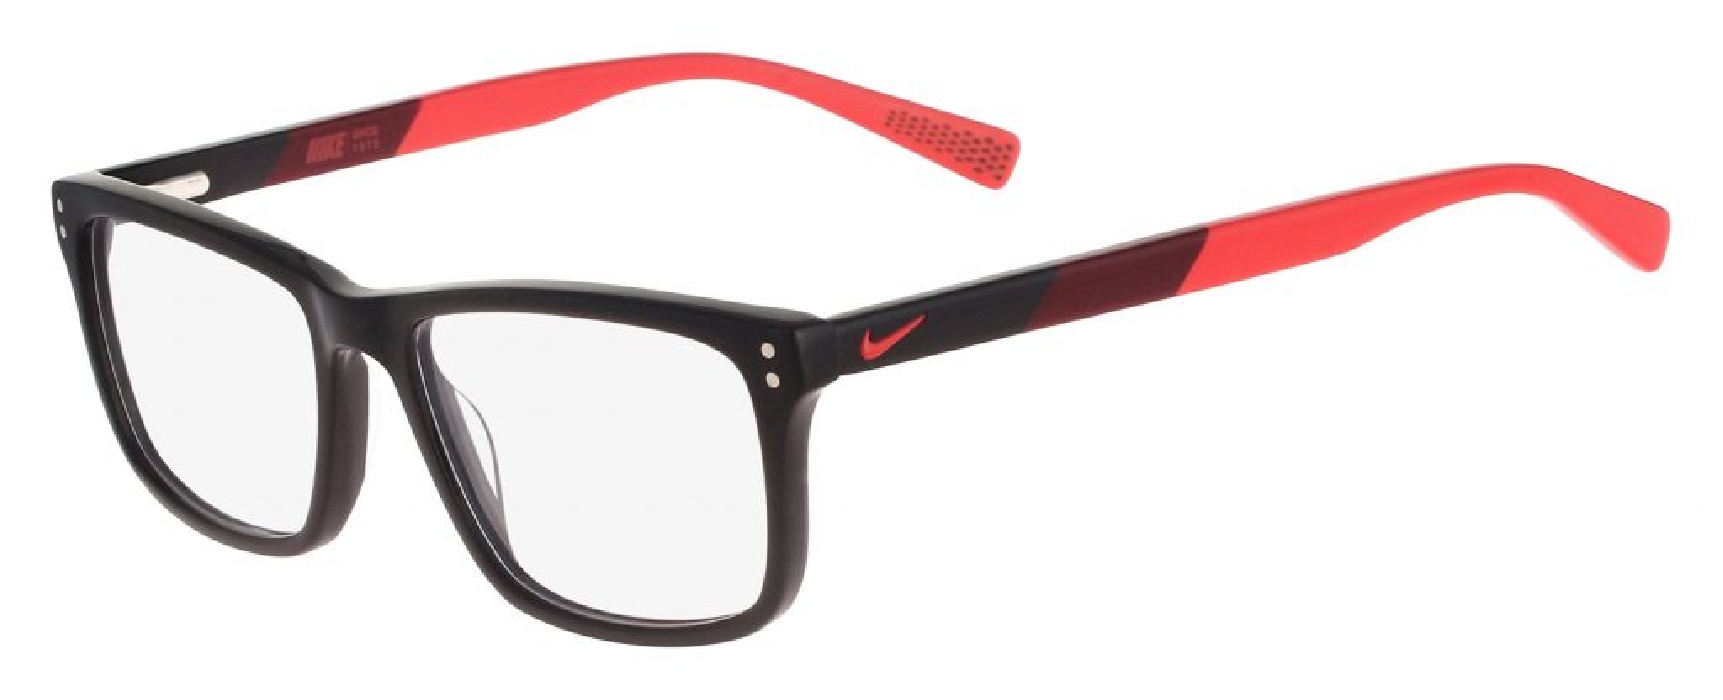 An image of Nike 7238 Black-Team Red